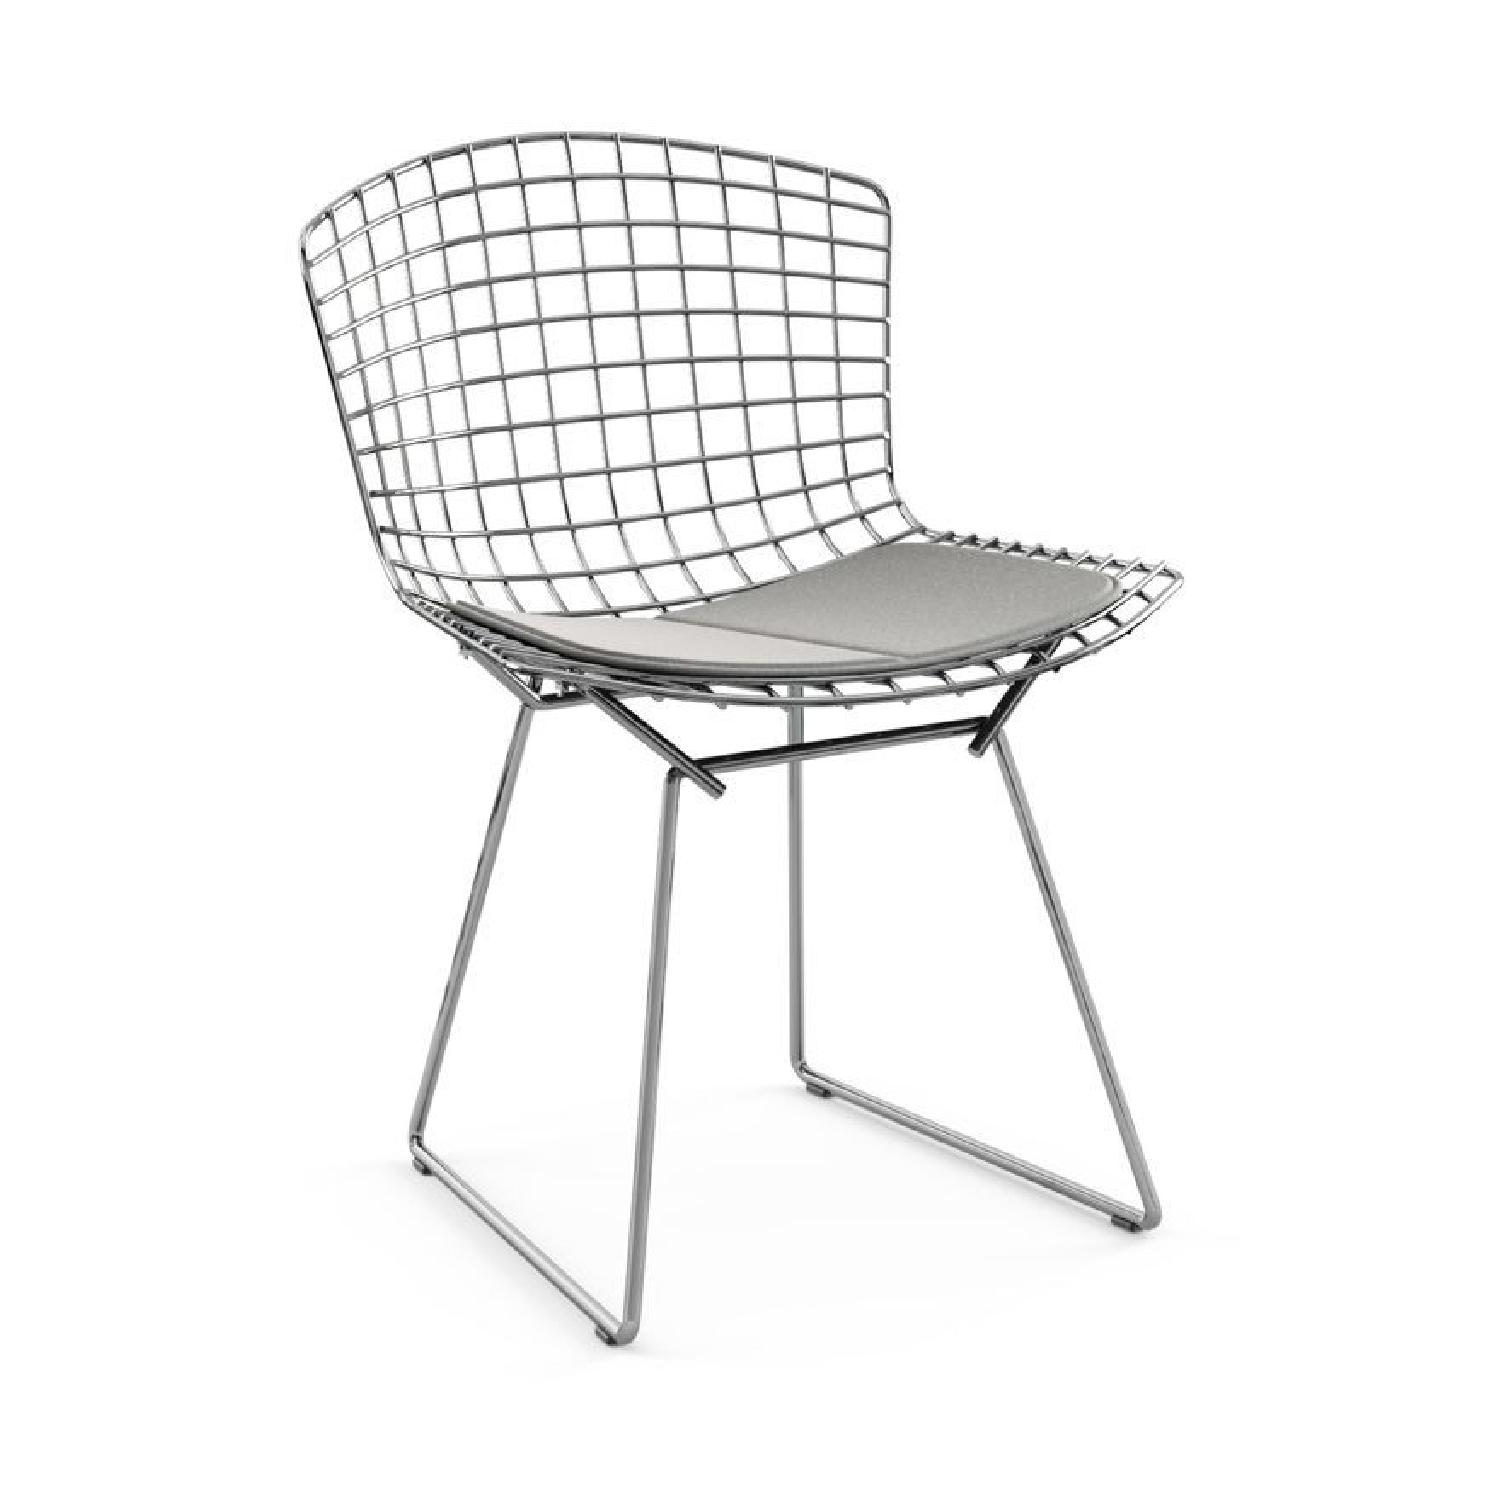 Knoll Pair of Midcentury Knoll Bertoia Wire Side Chairs - image-8